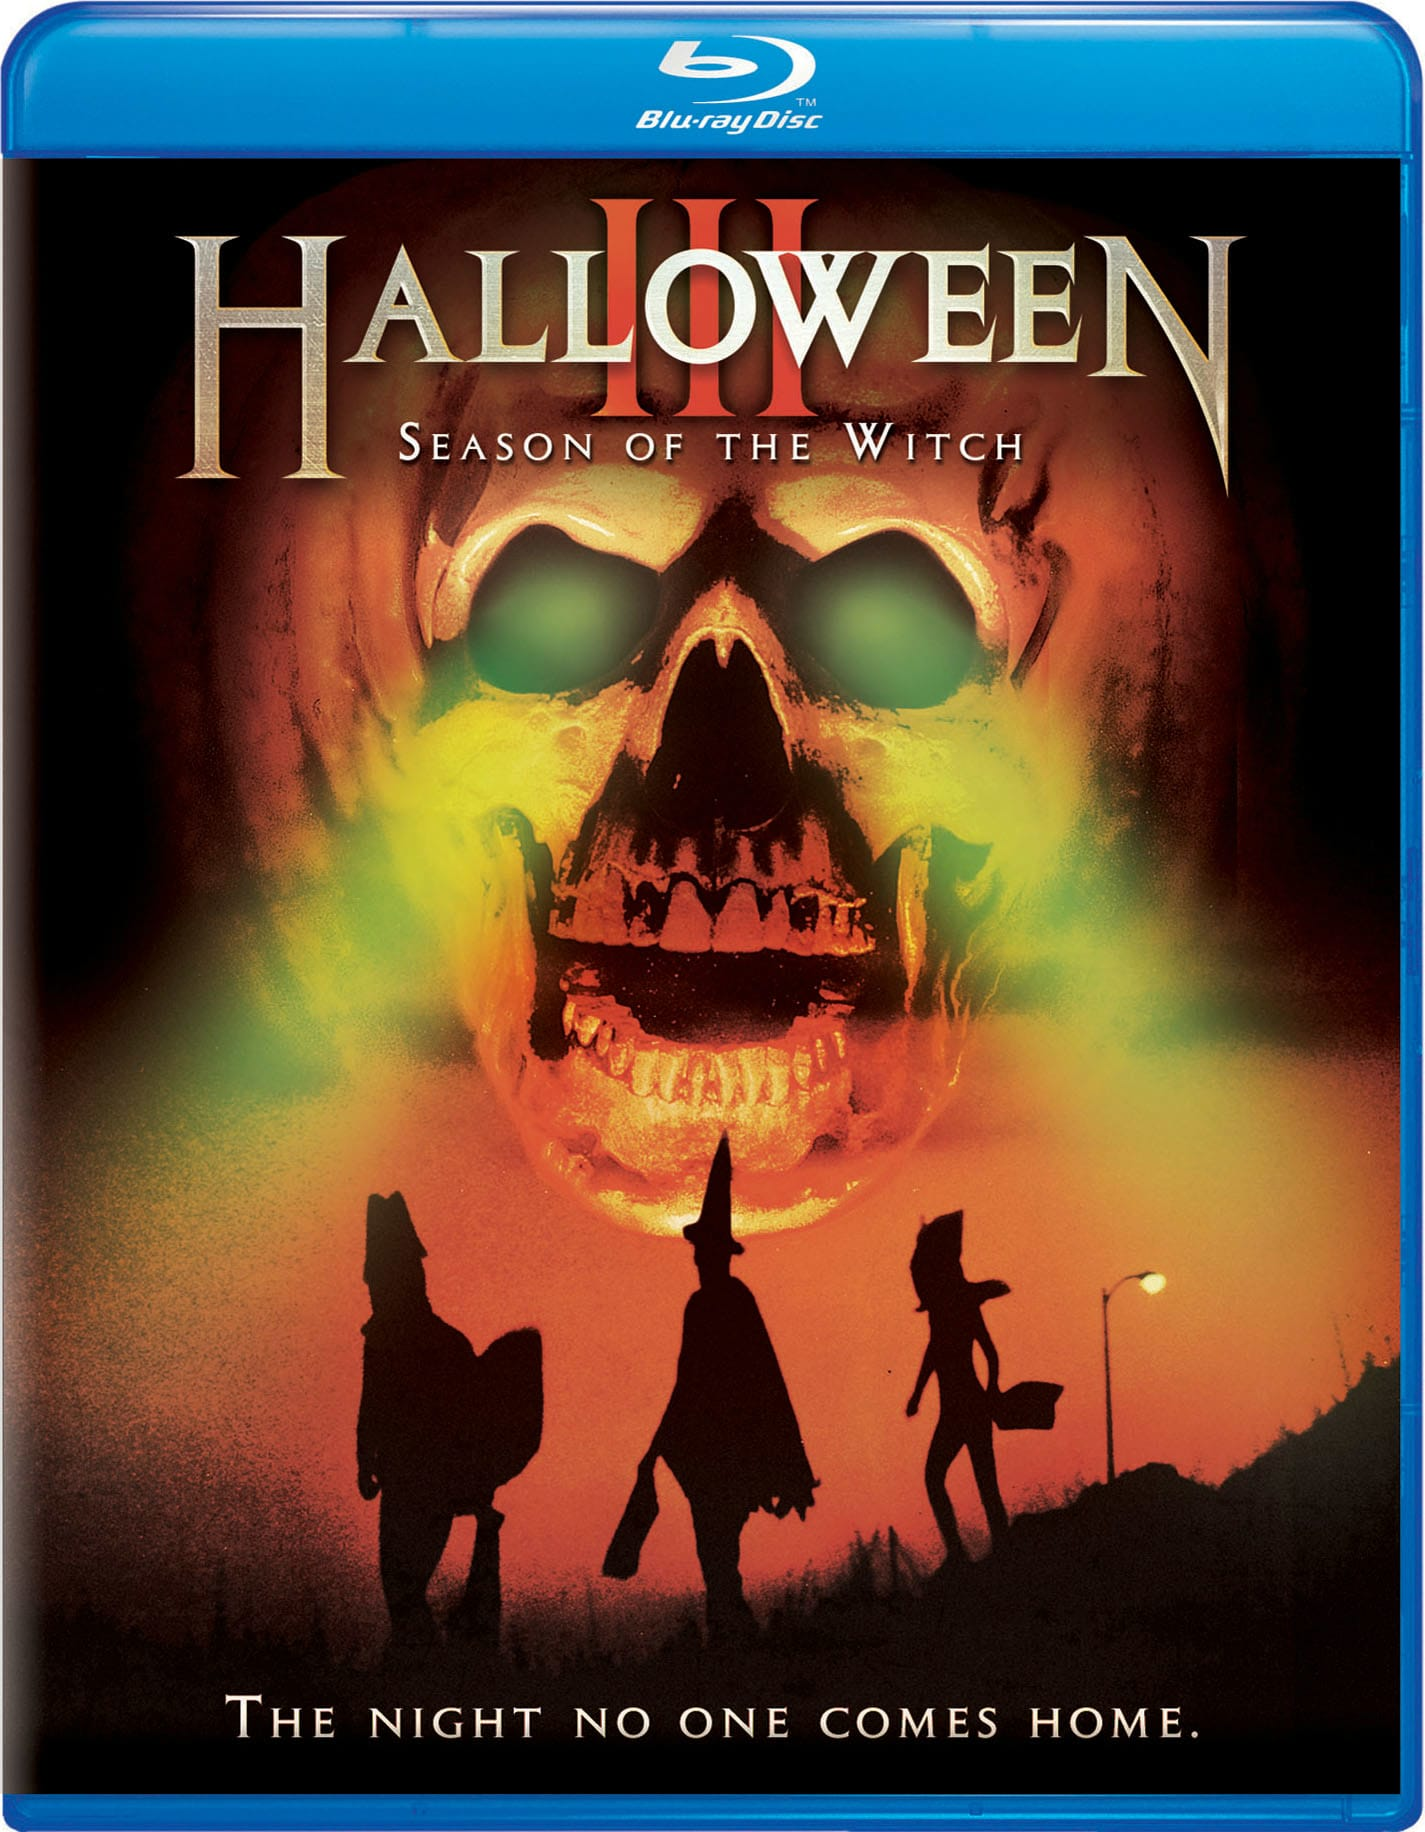 Halloween 3 - Season of the Witch [Blu-ray]